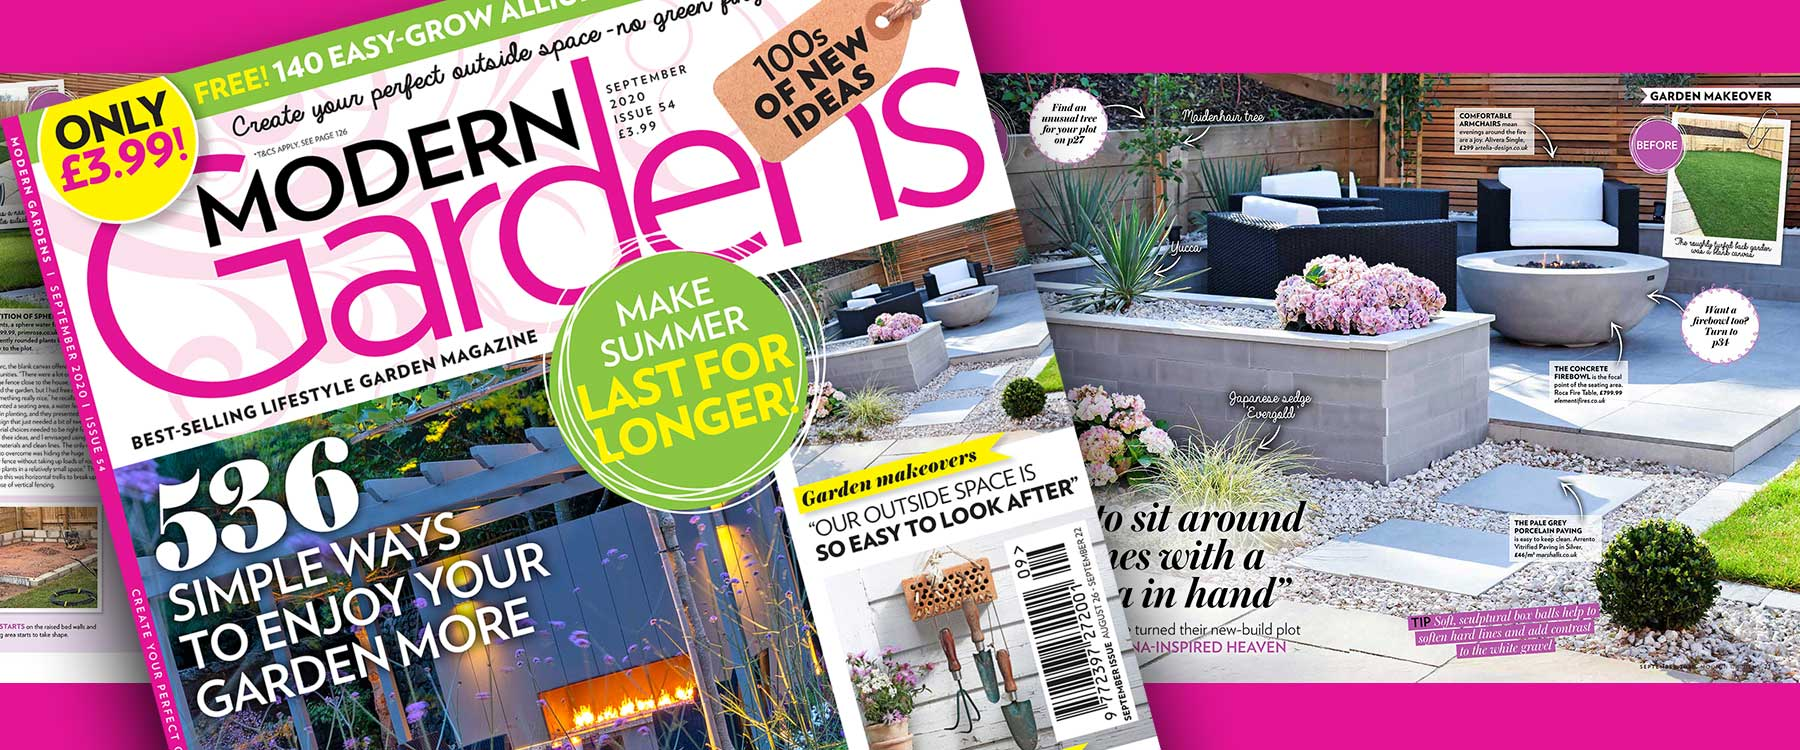 As Featured in Modern Gardens Magazine!